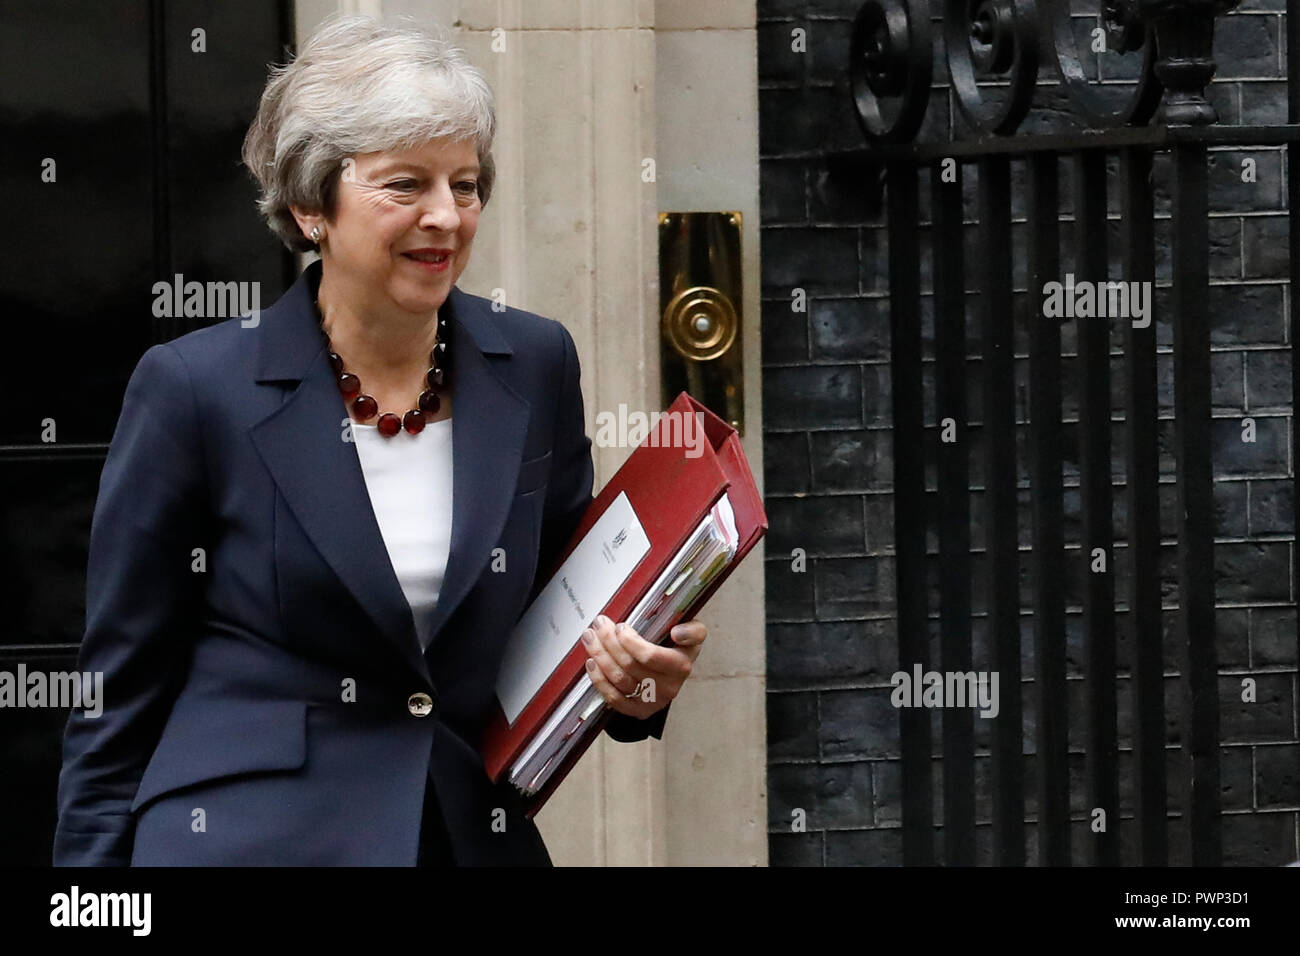 London, UK. 17th Oct, 2018. Britain's Prime Minister Theresa May leaves, ahead of ahead of an EU summit in Brussels, from 10 Downing Street in London, Wednesday October 17, 2018. Credit: Luke MacGregor/Alamy Live News Stock Photo